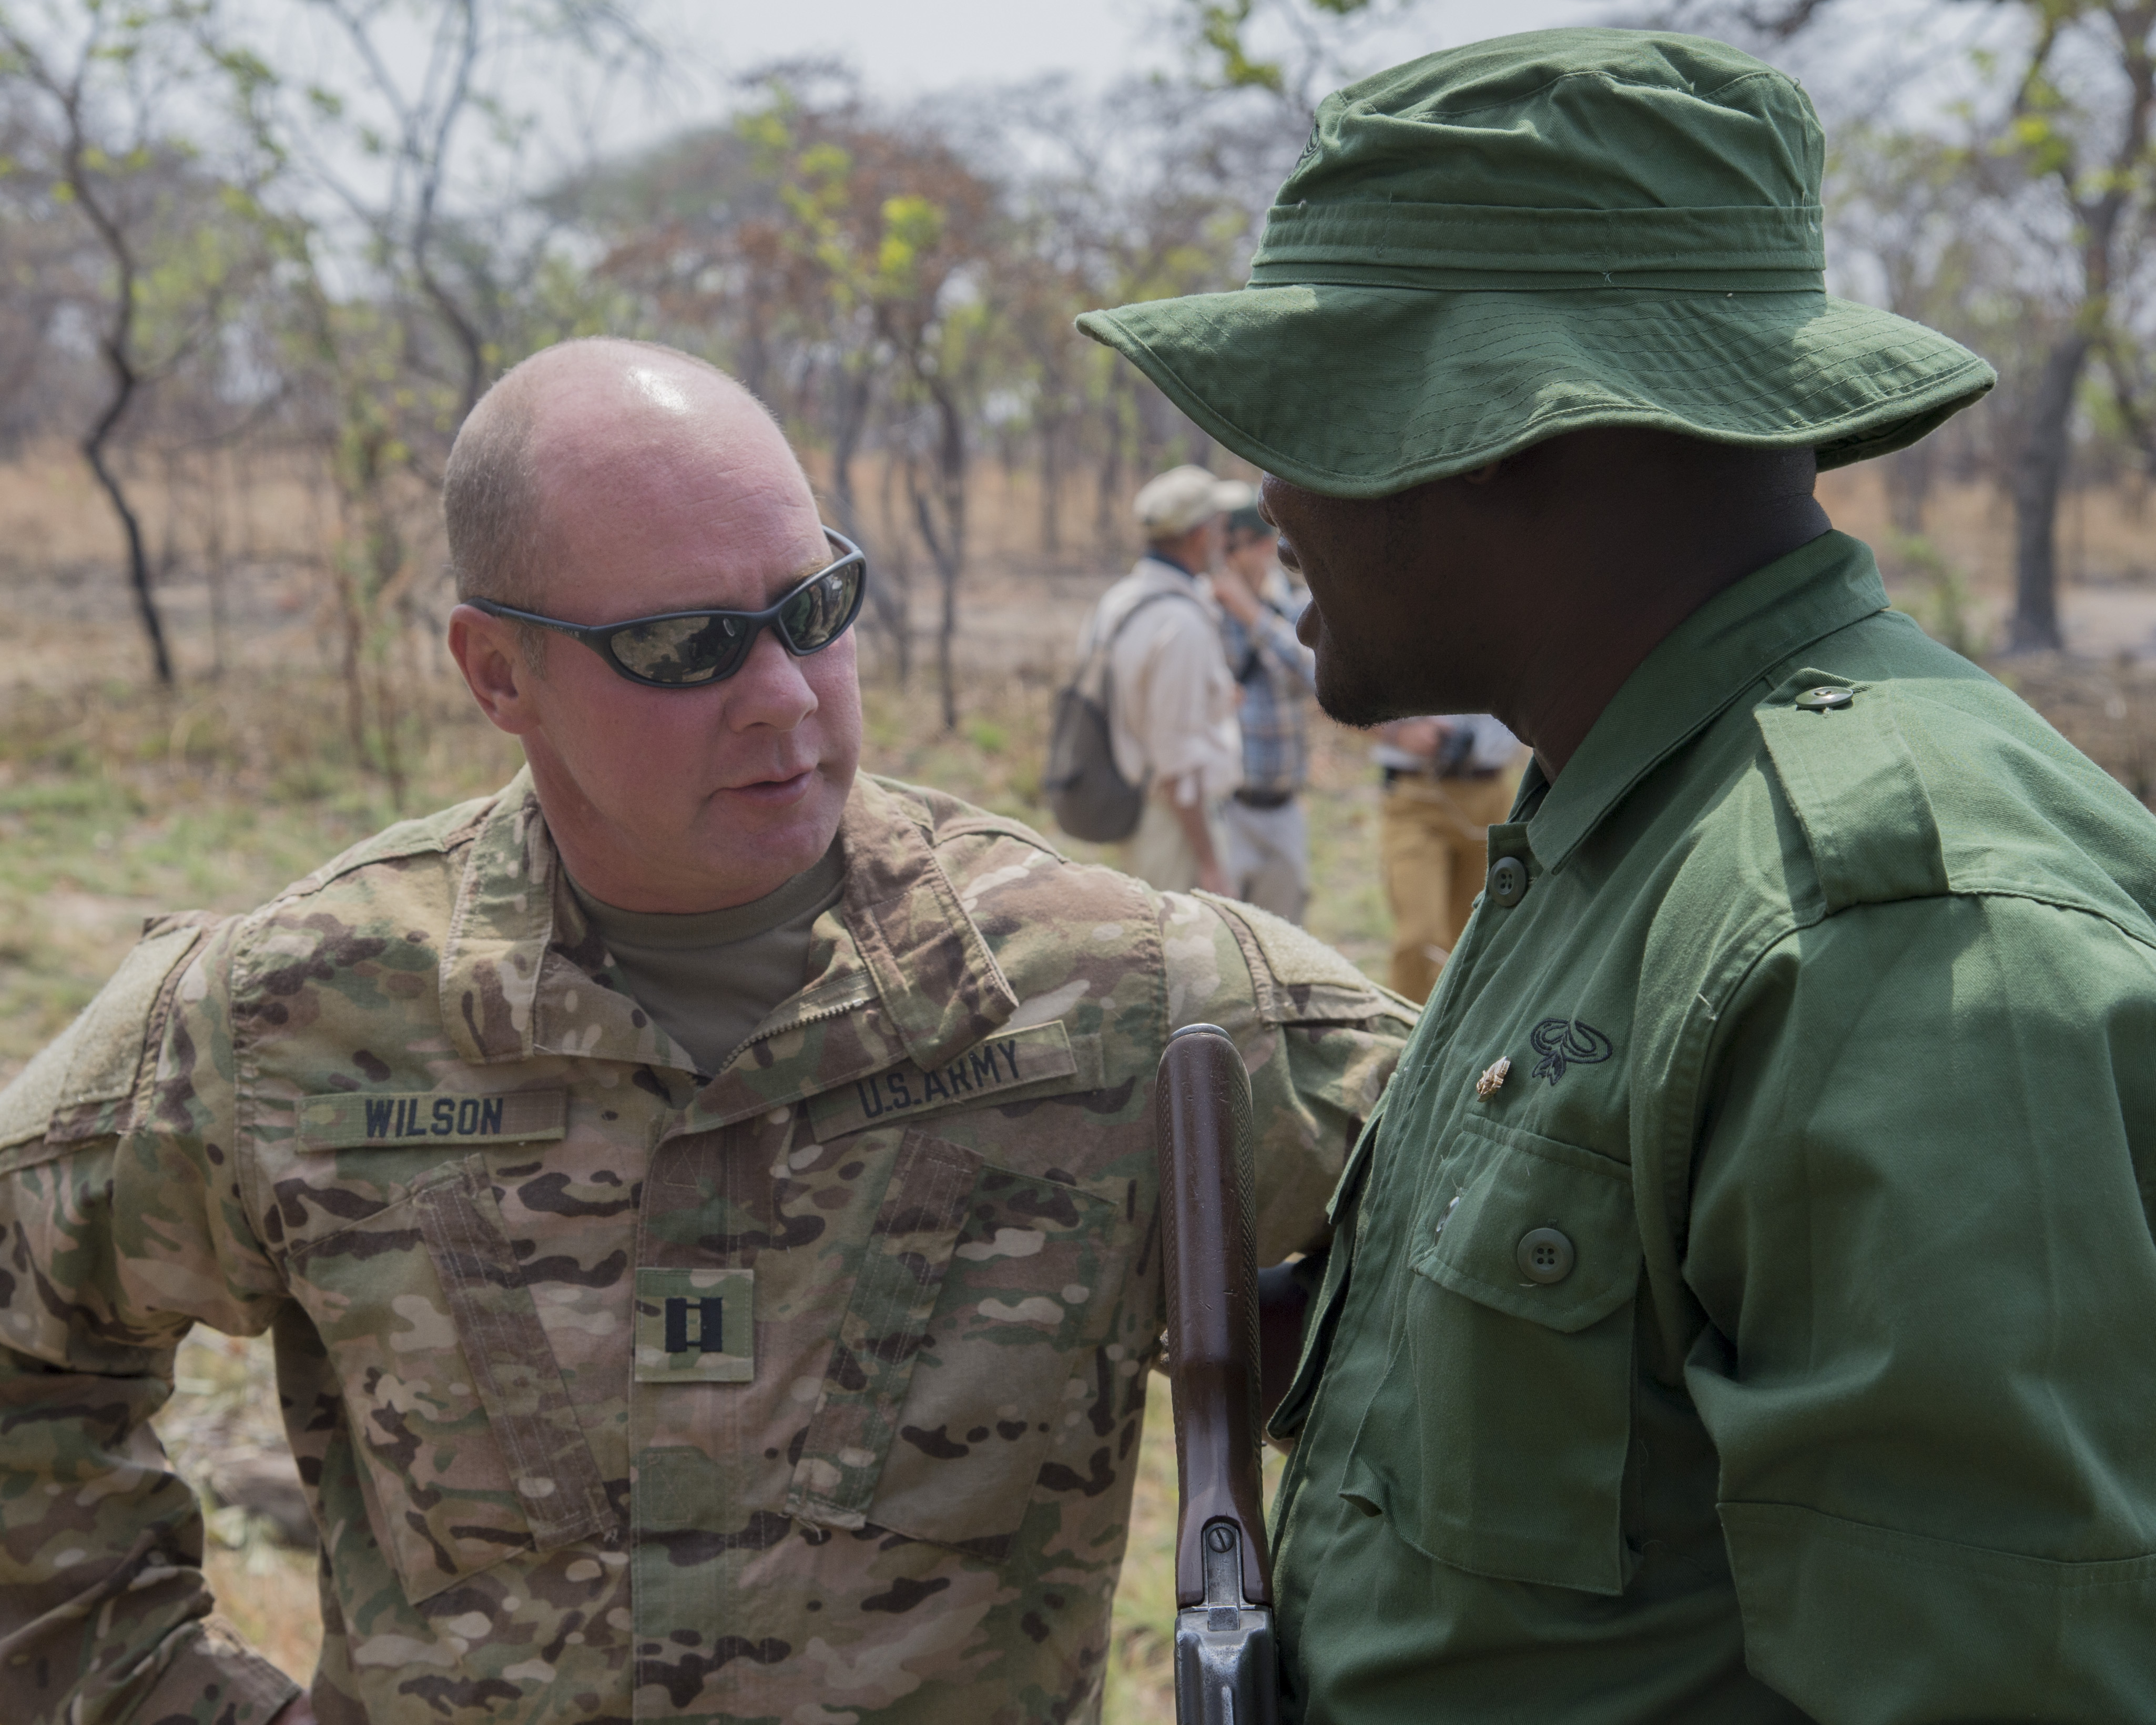 U.S. Army Capt. Michael Wilson, 403rd Civil Affairs Battalion team leader, speaks with a Tanzanian Ranger after a demonstration of capabilities Aug 24, 2016, at Rungwa Game Reserve, Tanzania. Members form the 403rd Civil Affairs Battalion, a component of Joint Task Force - Horn of Africa, and North Carolina Army National Guard, taught the rangers techniques to increase their skills in small unit tactics, first aid, gathering intelligence and other field crafts. The soldiers were training the rangers in how to combat poachers on the reserve.  Poaching and trafficking in wildlife has become a source of revenue for violent extremist organizations on the continent. (U.S. Air Force photo by Staff Sgt. Eric Summers Jr./Released)